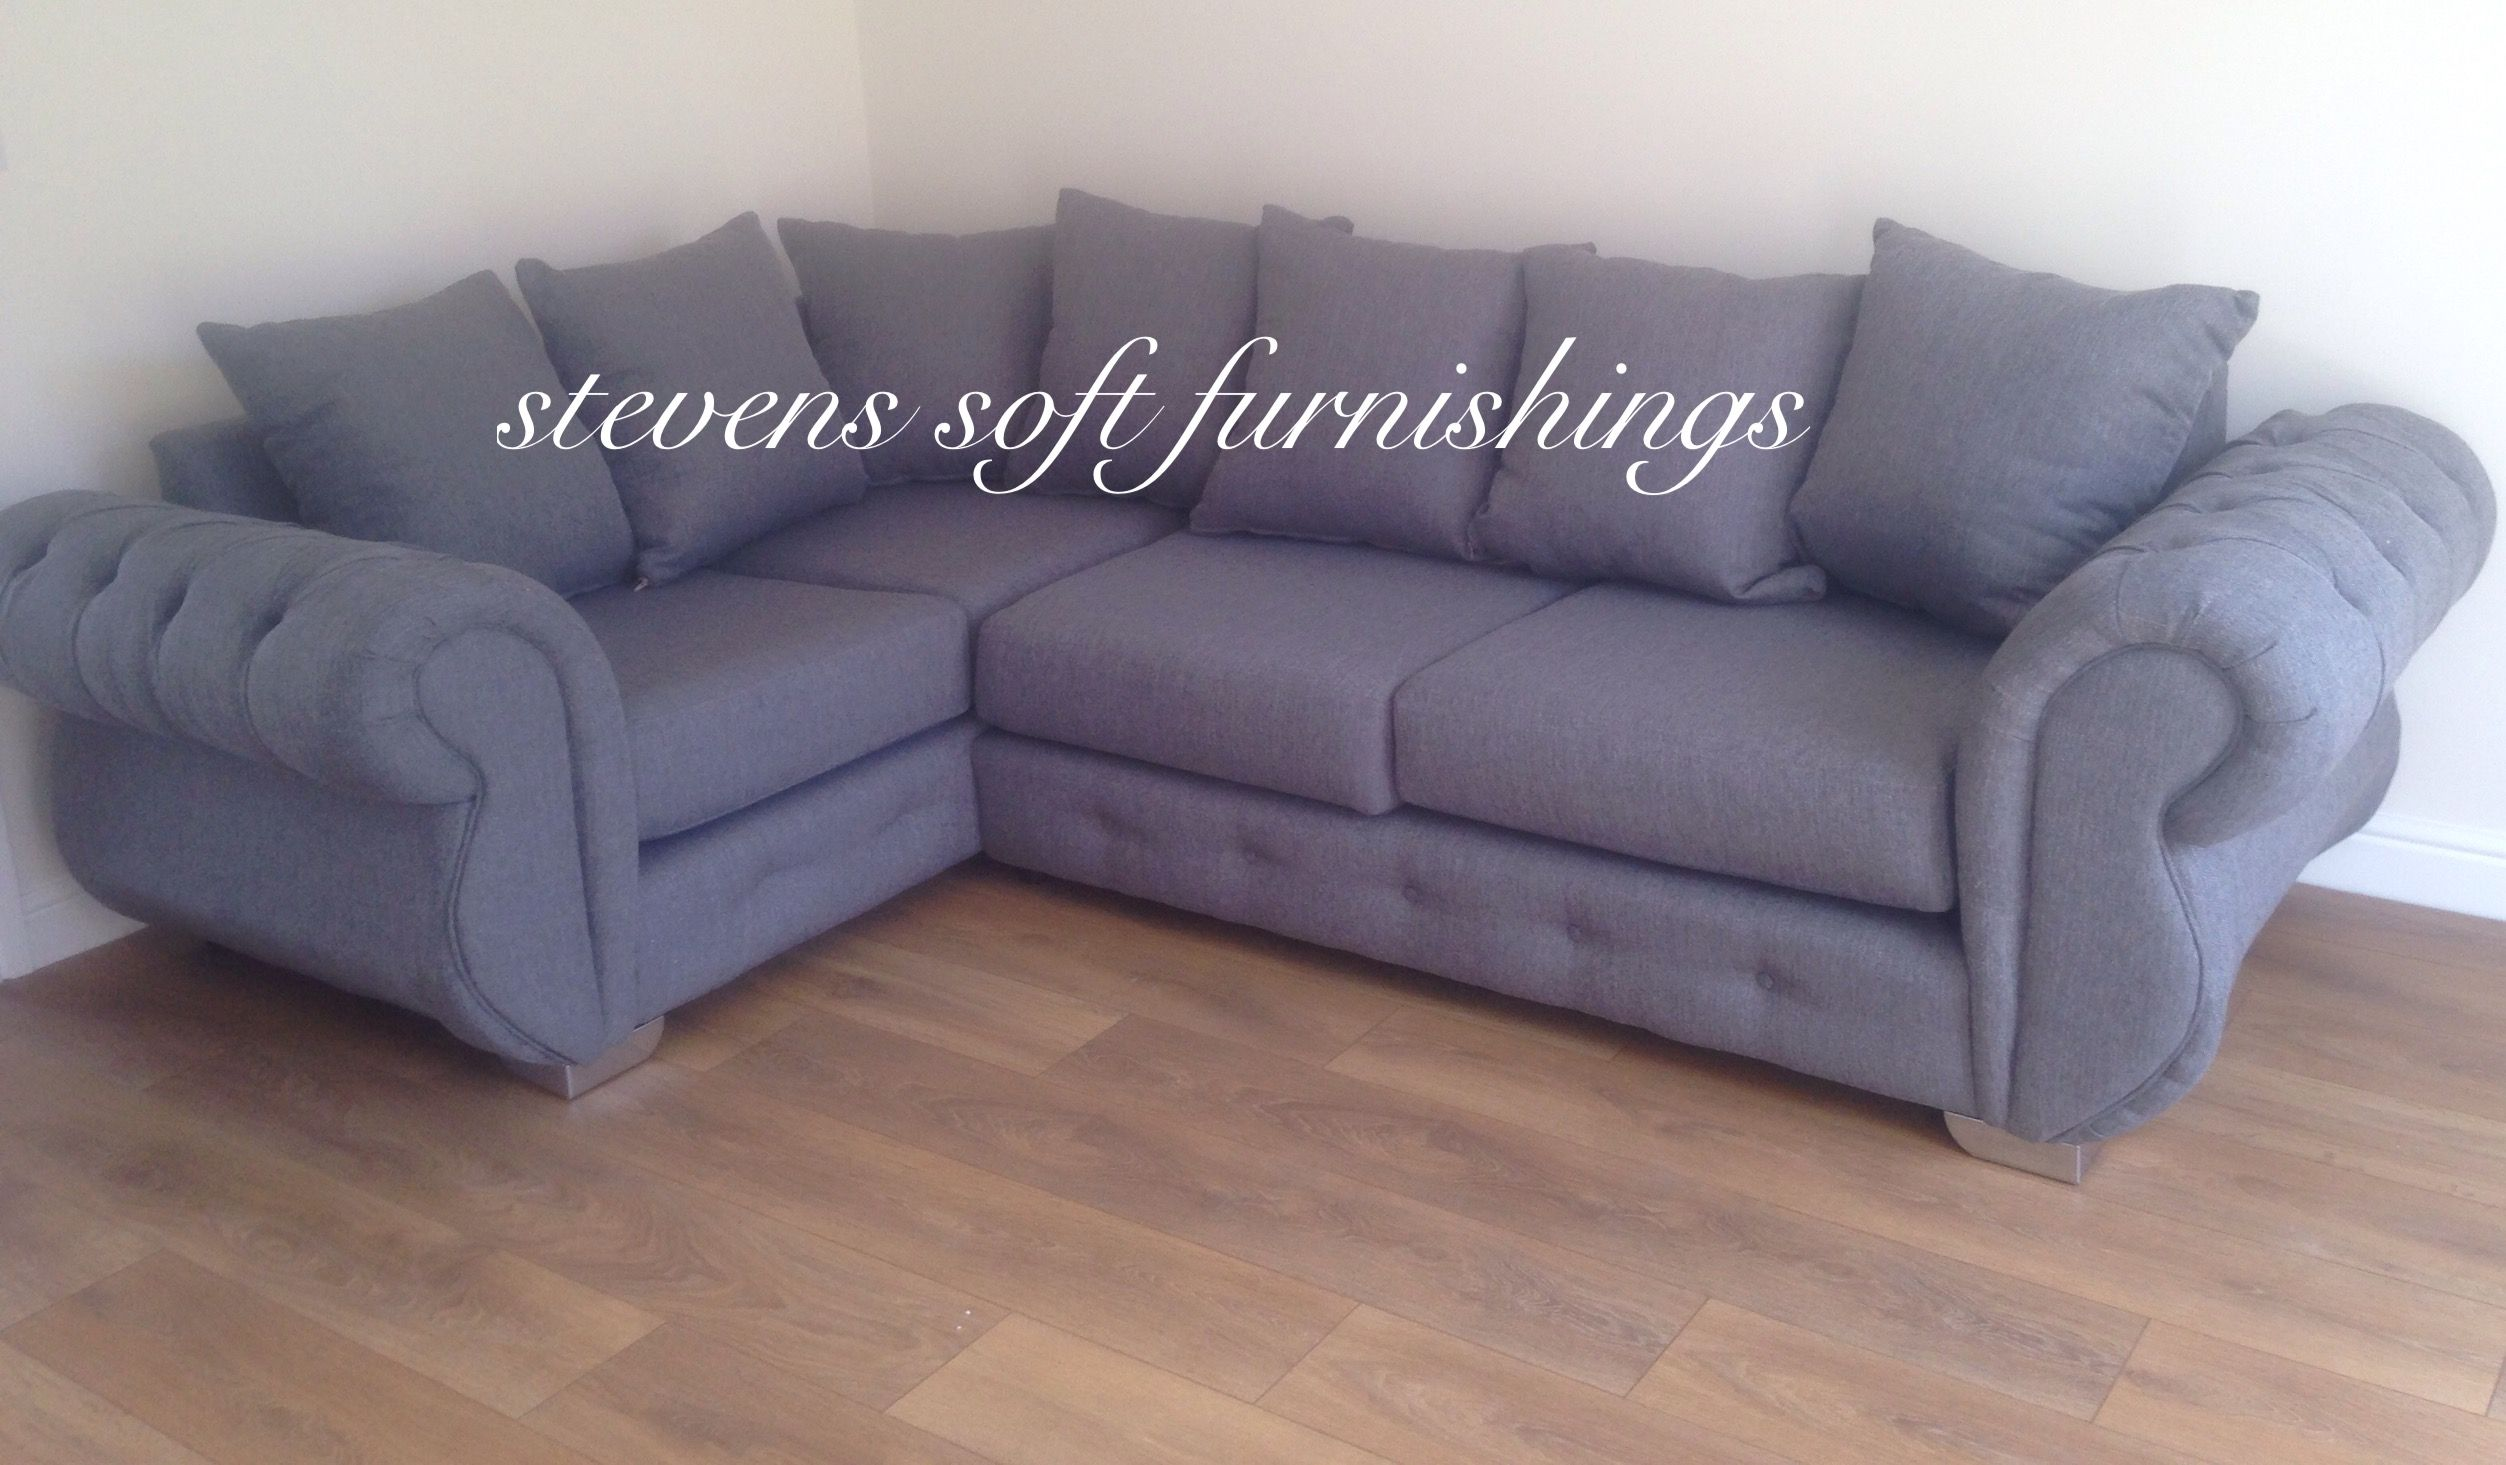 4 Seater Chesterfield Corner Sofa Chesterfield Corner Sofa Grey Baci Living Room